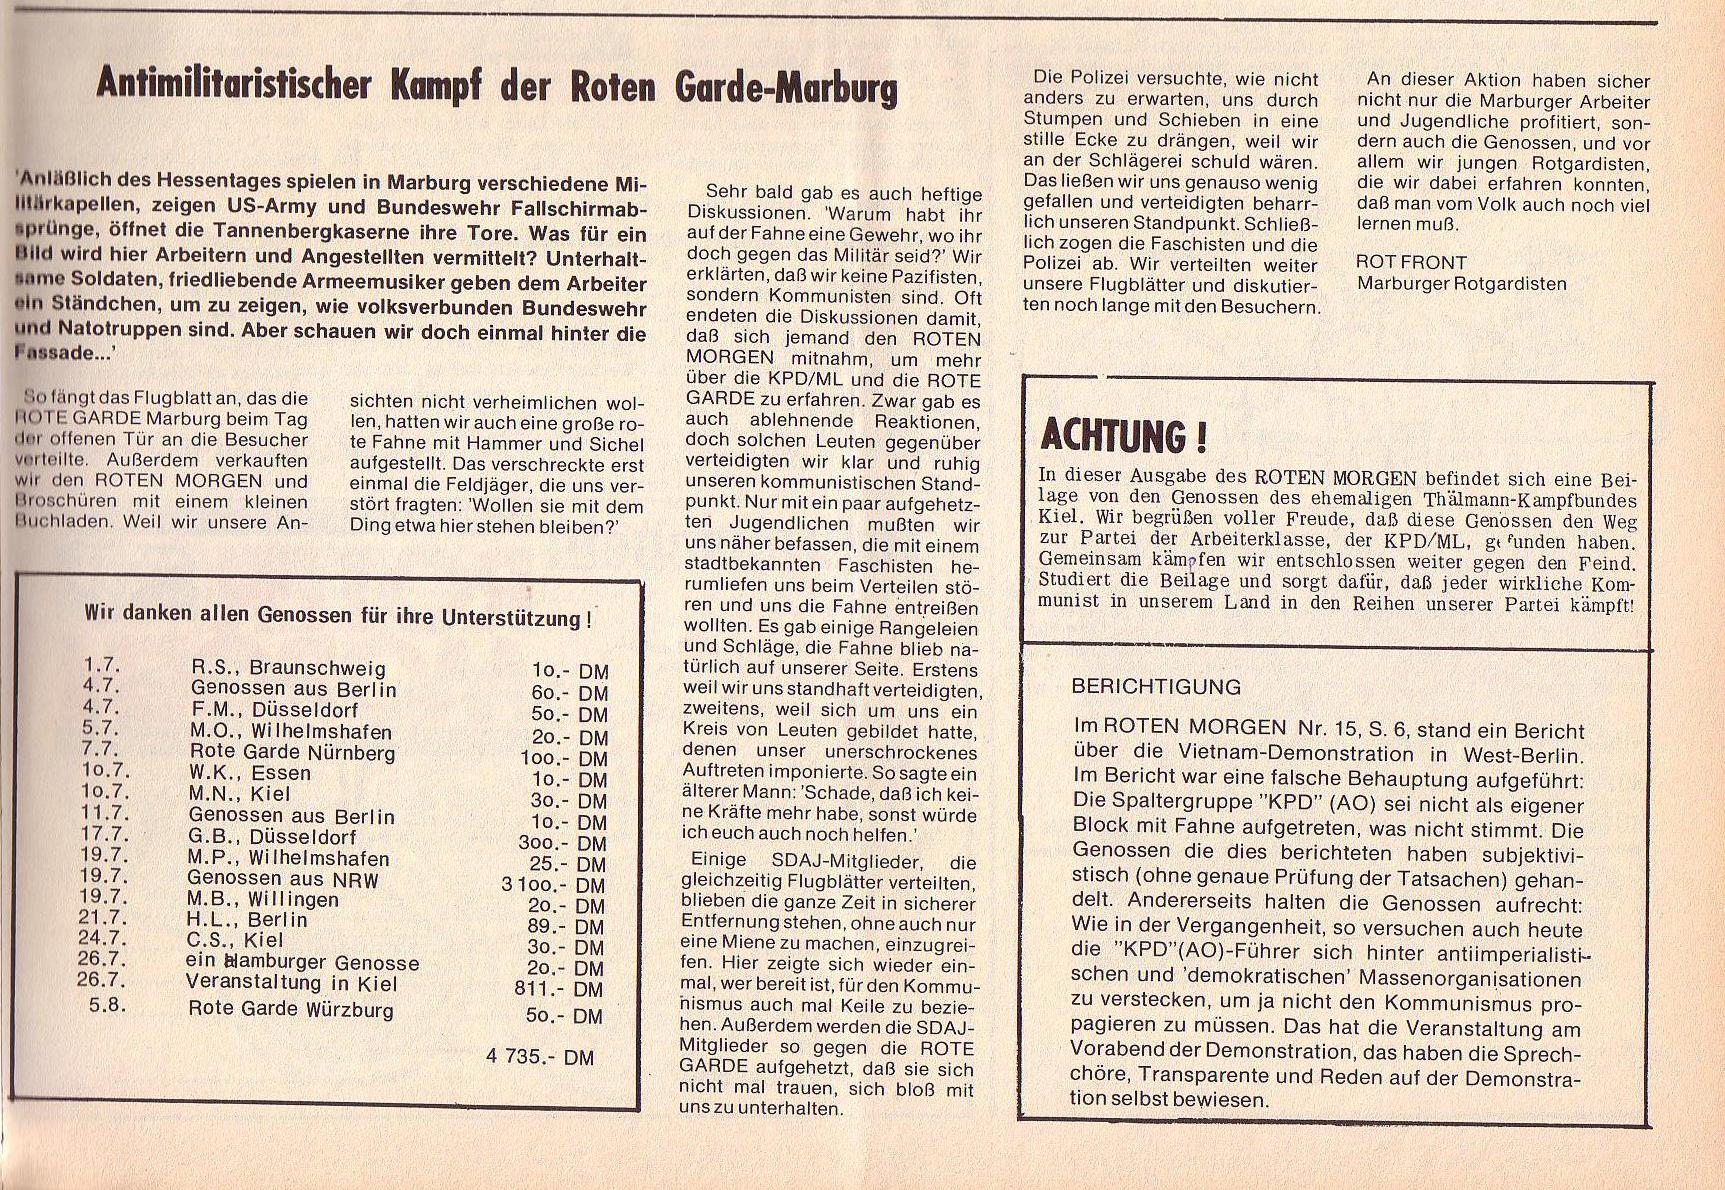 Roter Morgen, 6. Jg., 14. August 1972, Nr. 16, Seite 11b